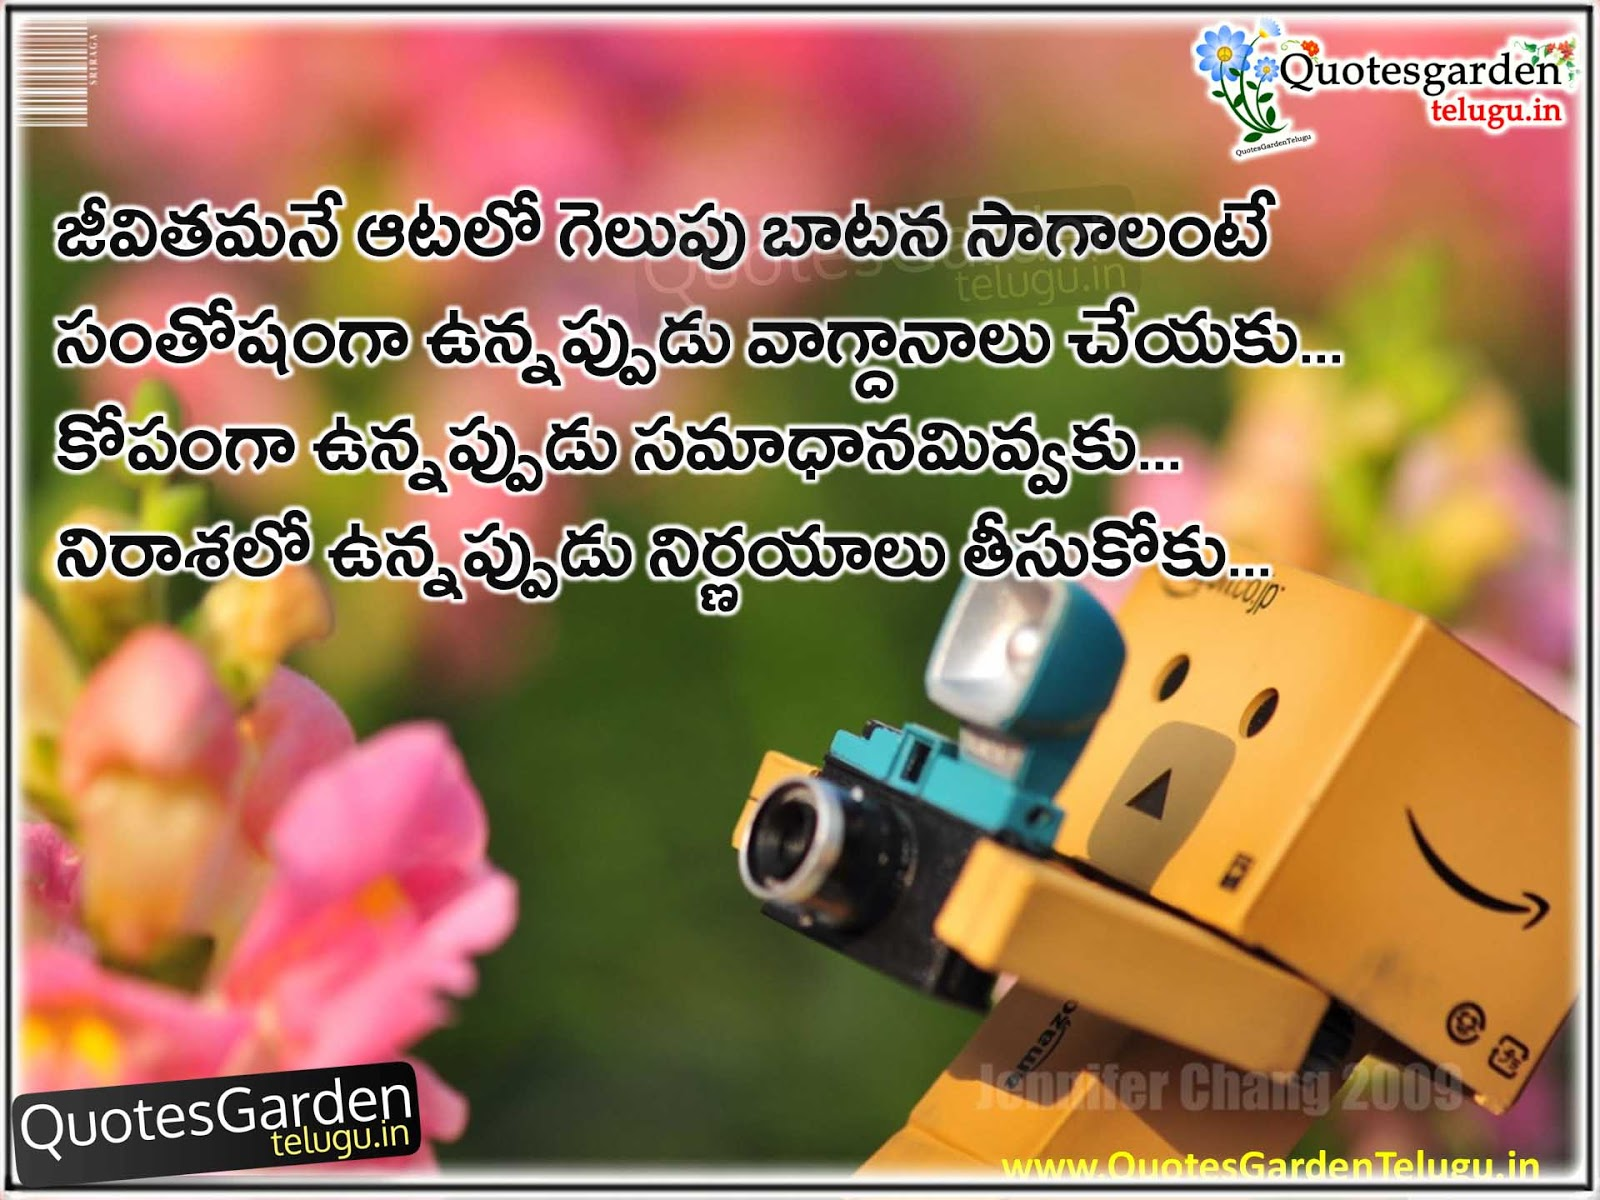 New Telugu Life Quotes With Great Wallpapers   Quotes GArden Telugu